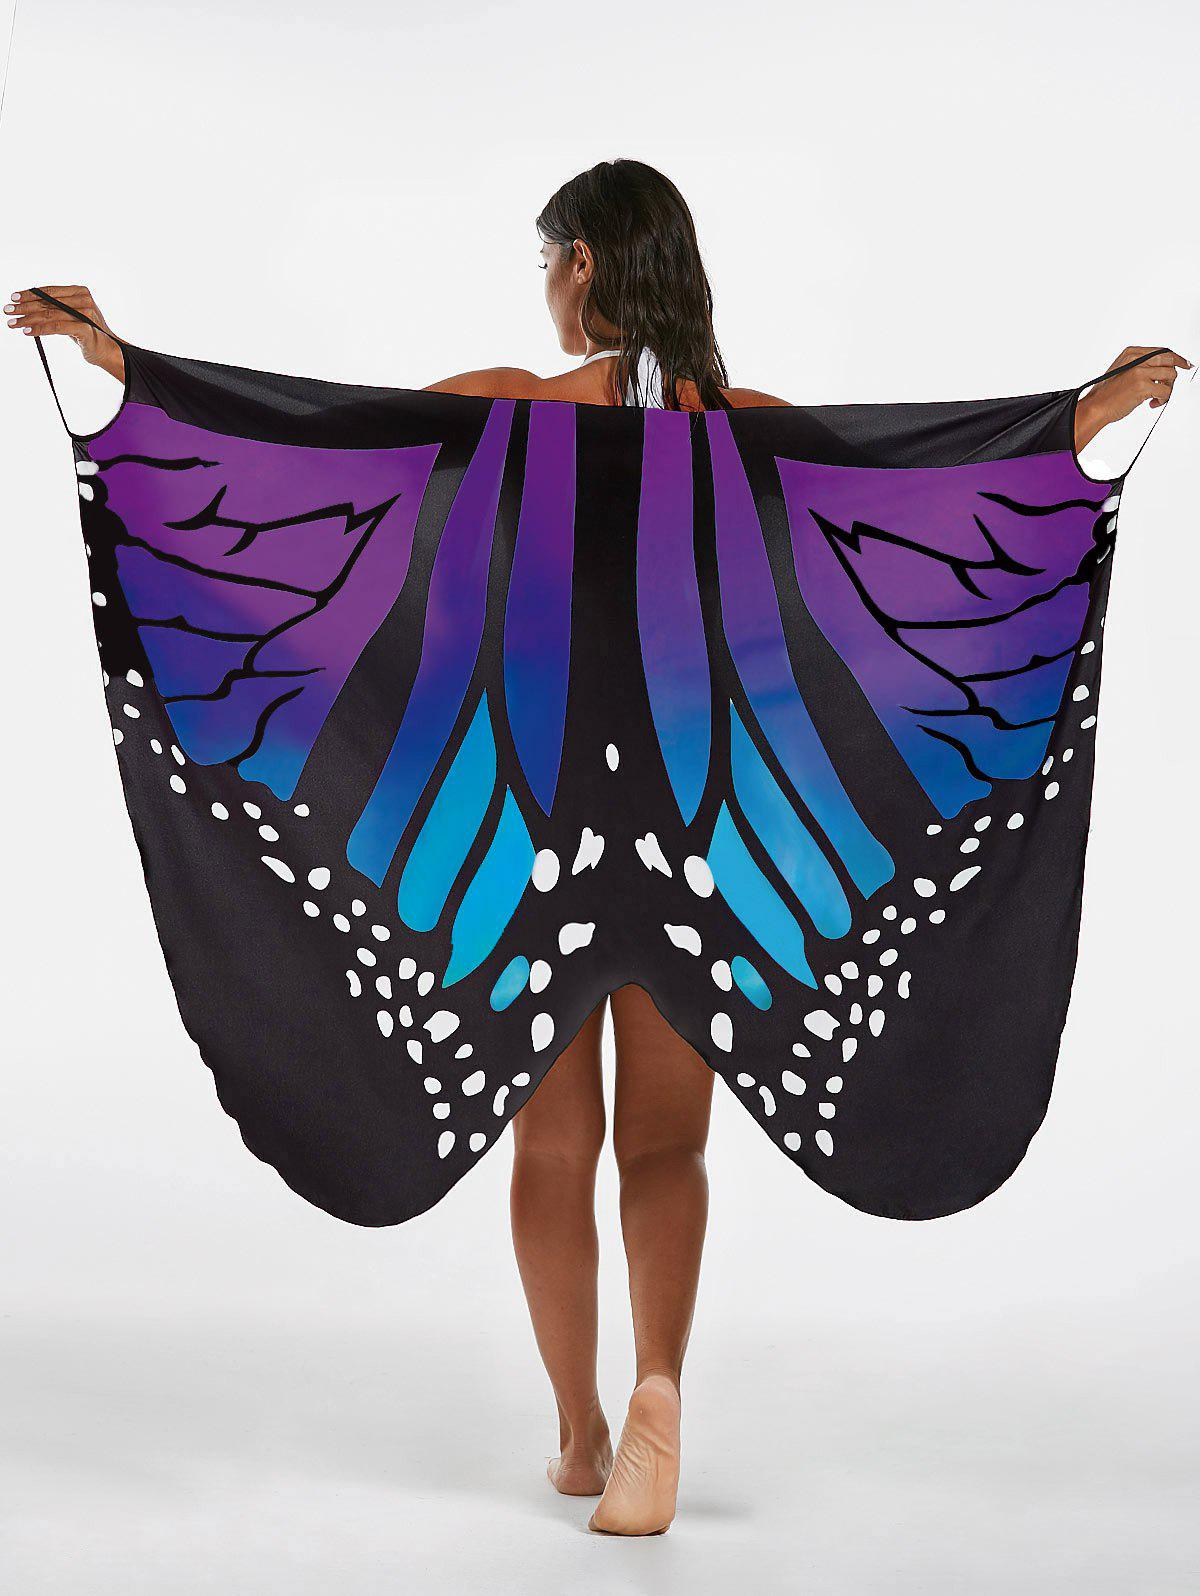 Butterfly Print Beach Wrap Cover Up Dress - BLUE / PURPLE XL